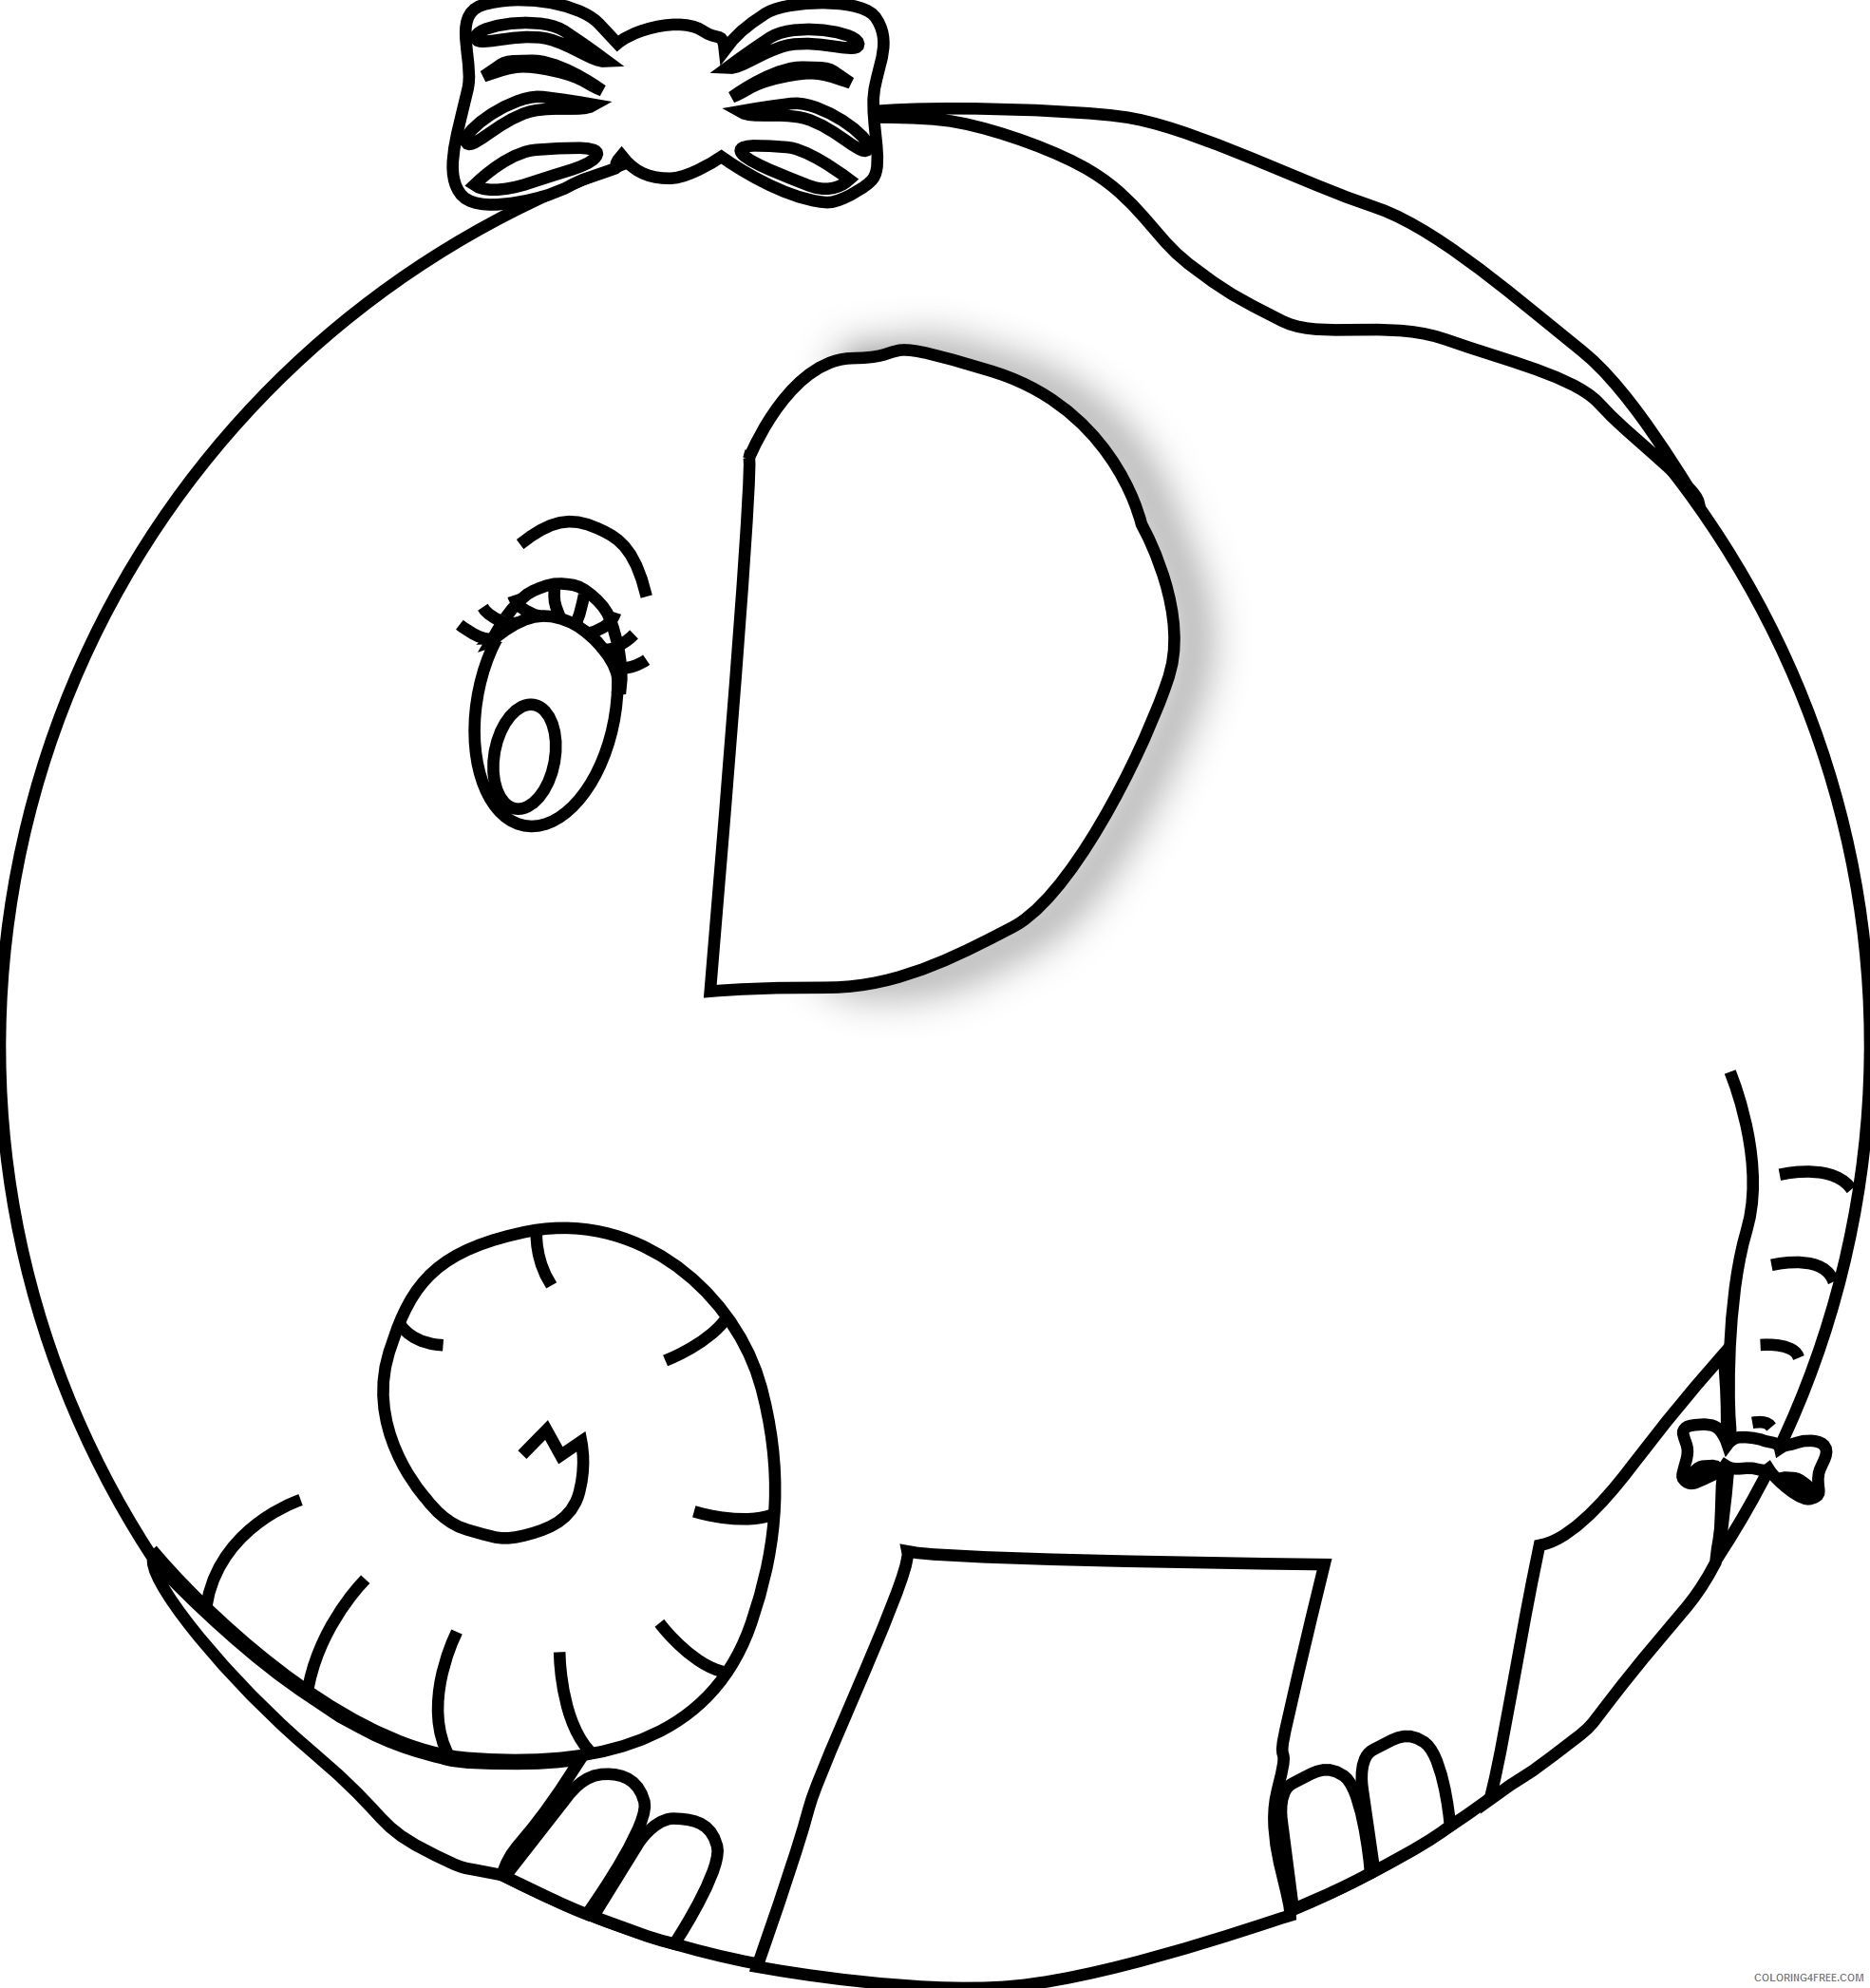 Black and White Elephant Coloring Pages elephant 2 girl black white Printable Coloring4free